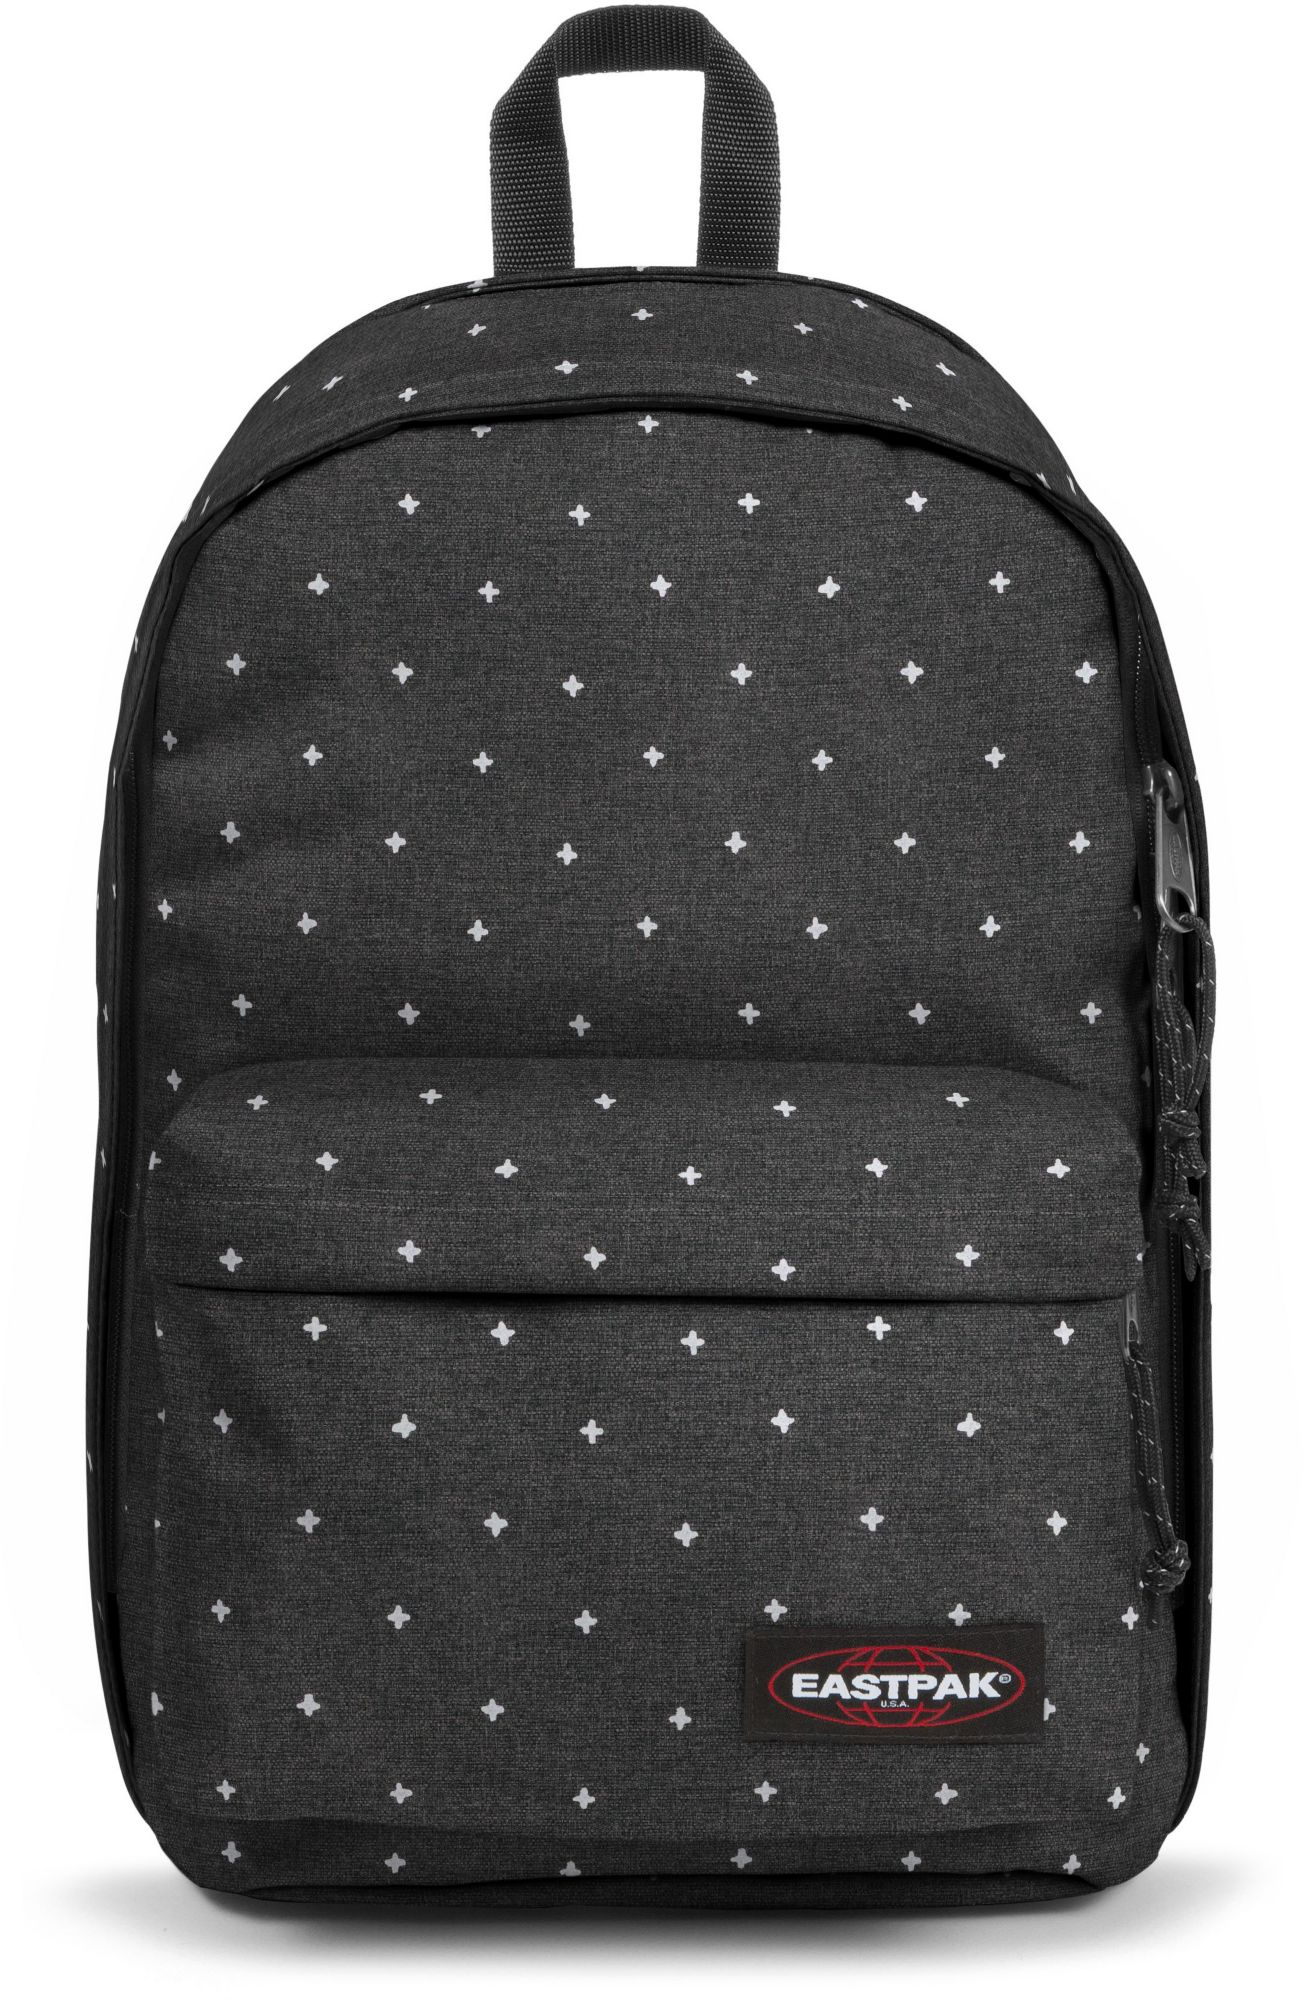 EASTPAK Eastpak Rucksack mit Laptopfach, »BACK TO WORK white crosses«